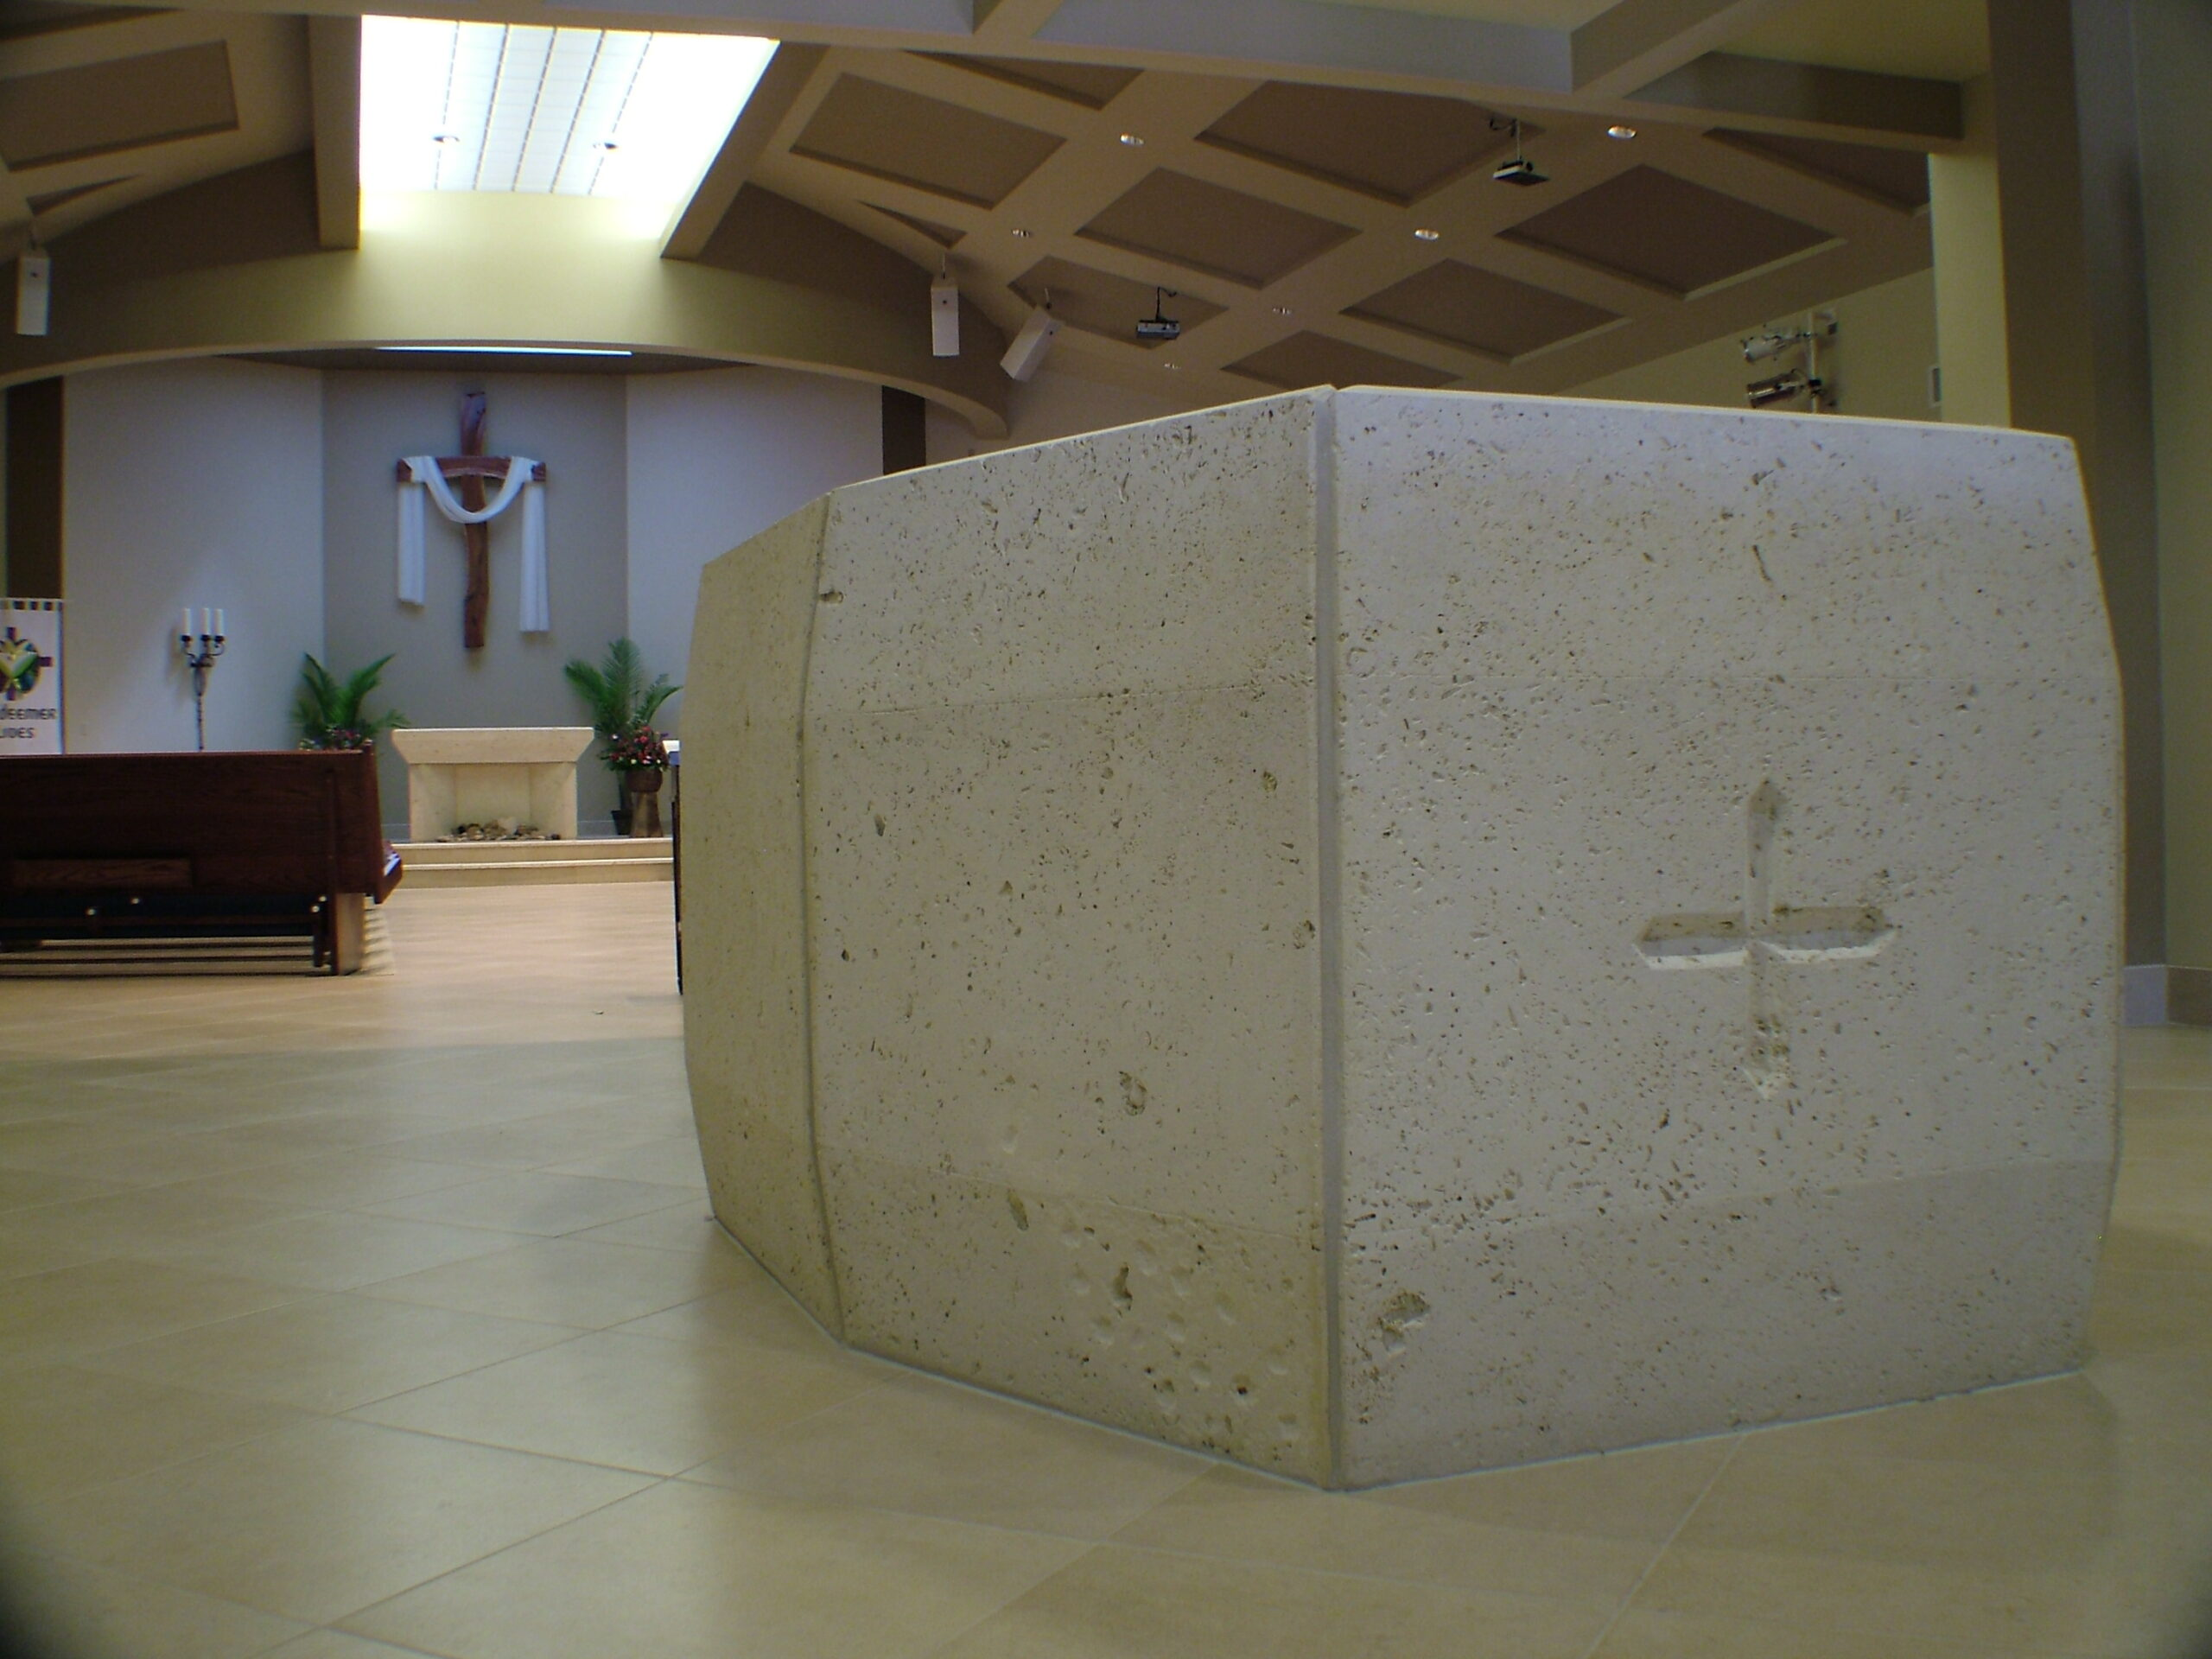 baptismal-font-st-marks-episcopal-corpus-christi-tx-side-view2-by-water-structures.JPG